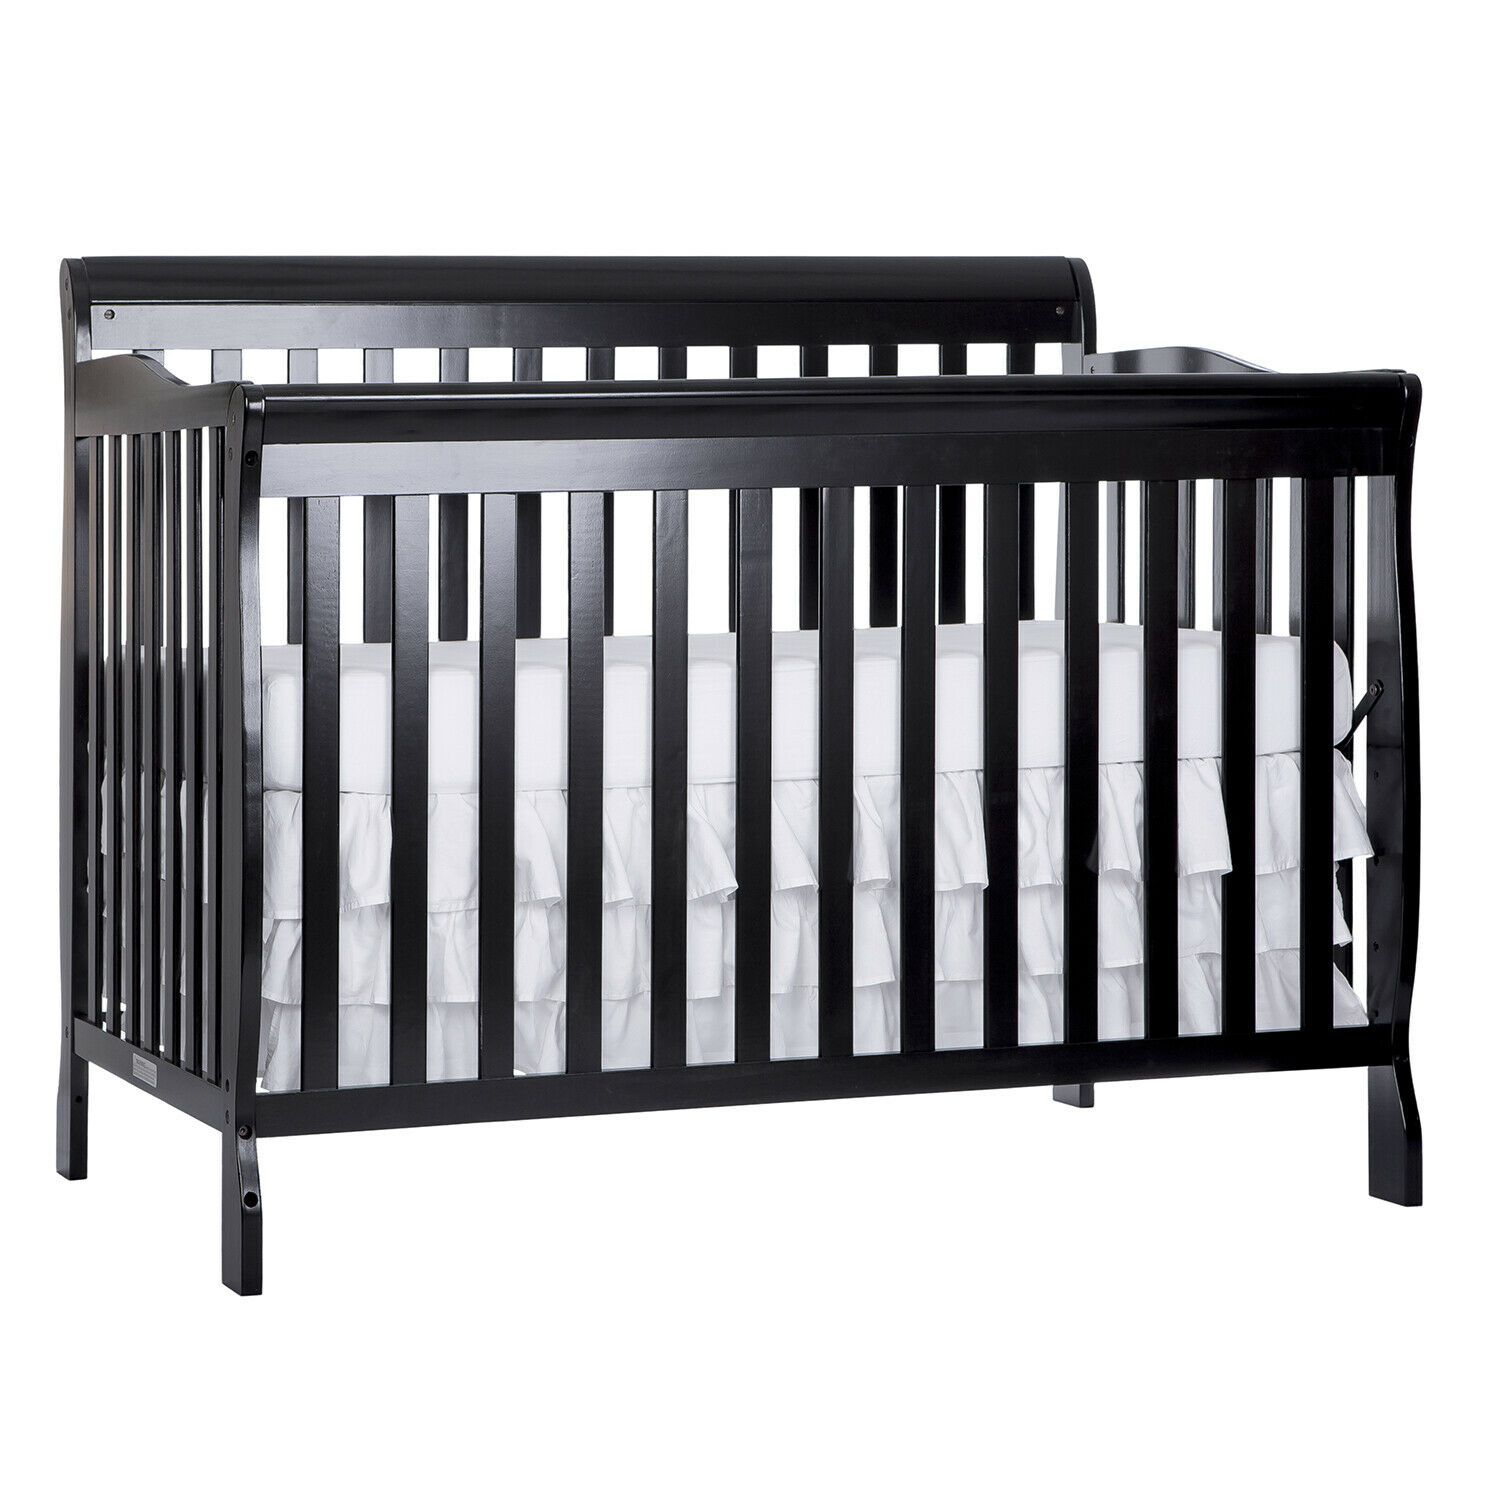 Convertible Baby Bed 5 In 1 Full Size Crib Black Nursery Bedroom Furniture New Baby Bed Babybed In 2020 Convertible Toddler Bed Cheap Toddler Beds Best Baby Cribs